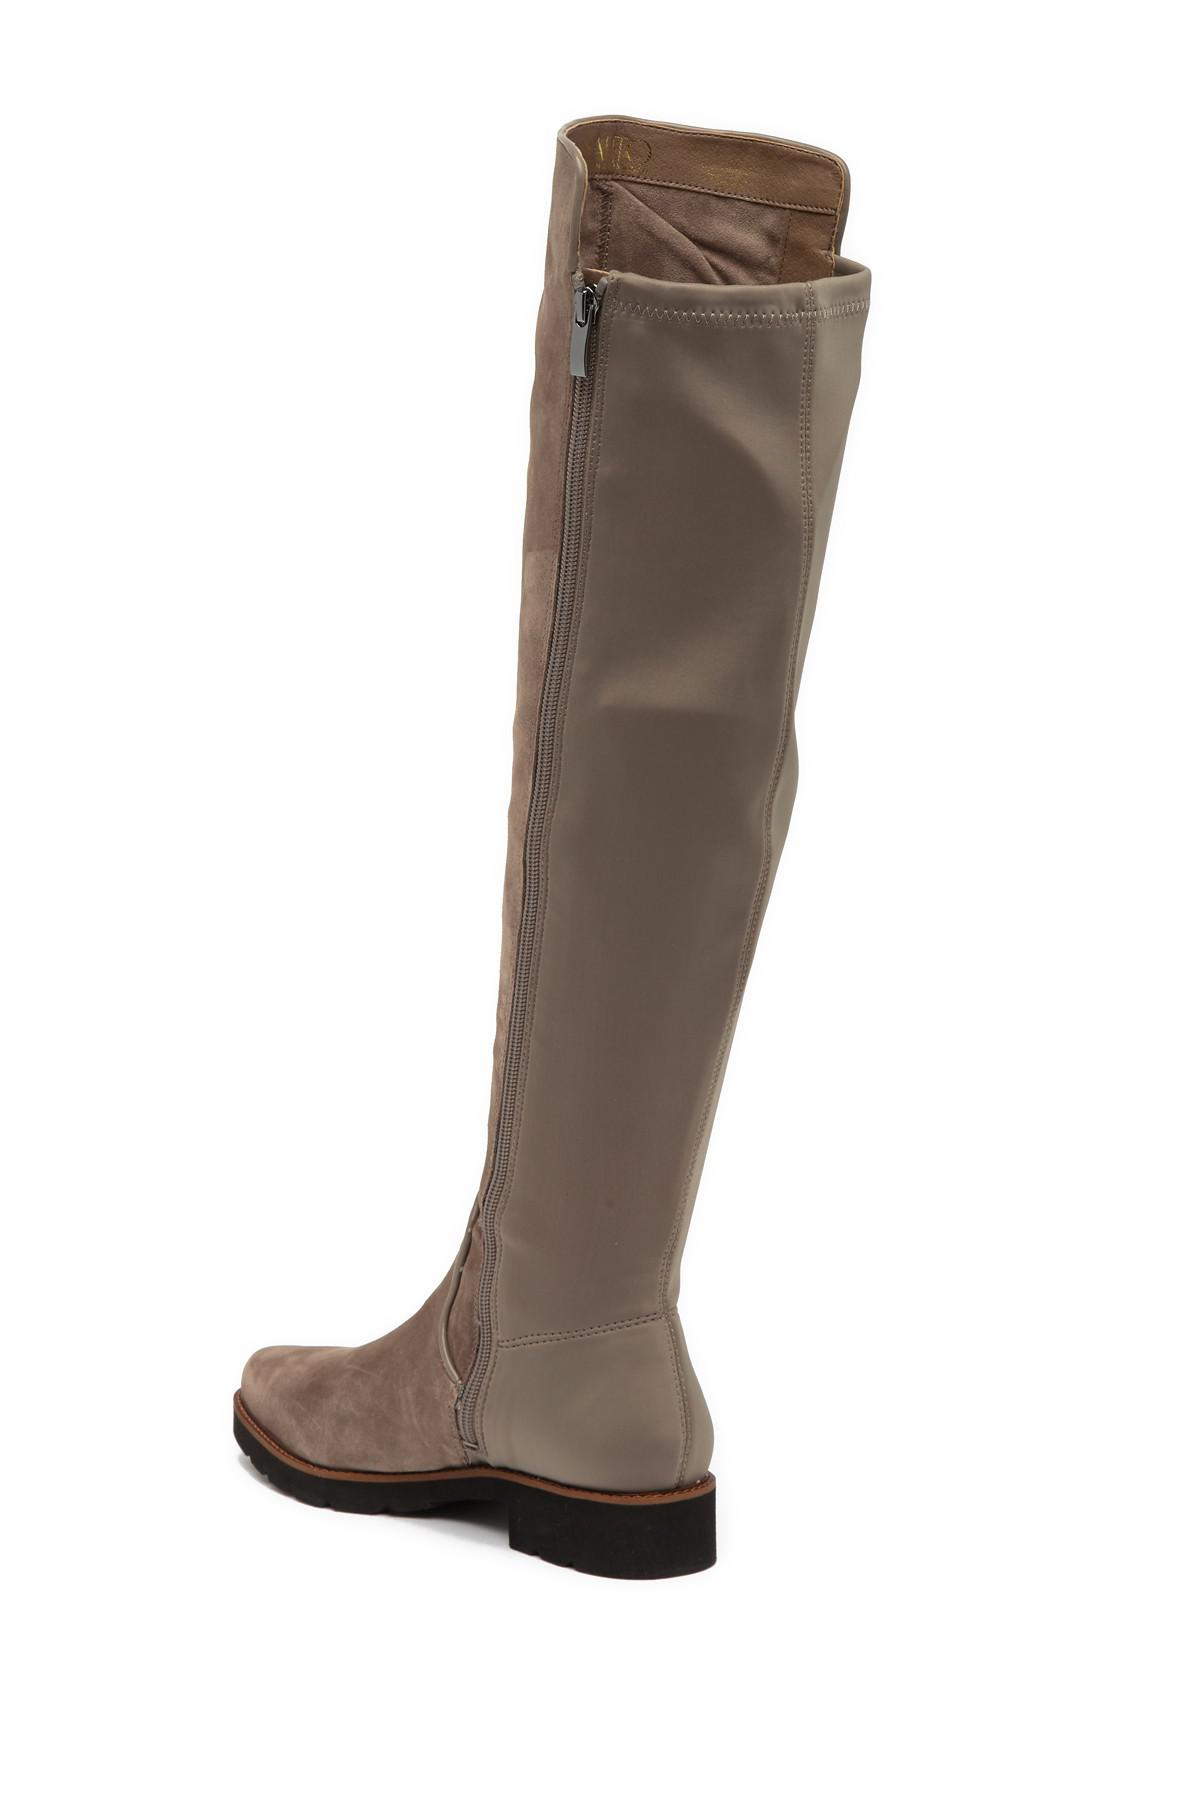 bca0cc3cc34 Franco Sarto - Brown Benner Leather Over-the-knee Boot - Lyst. View  fullscreen